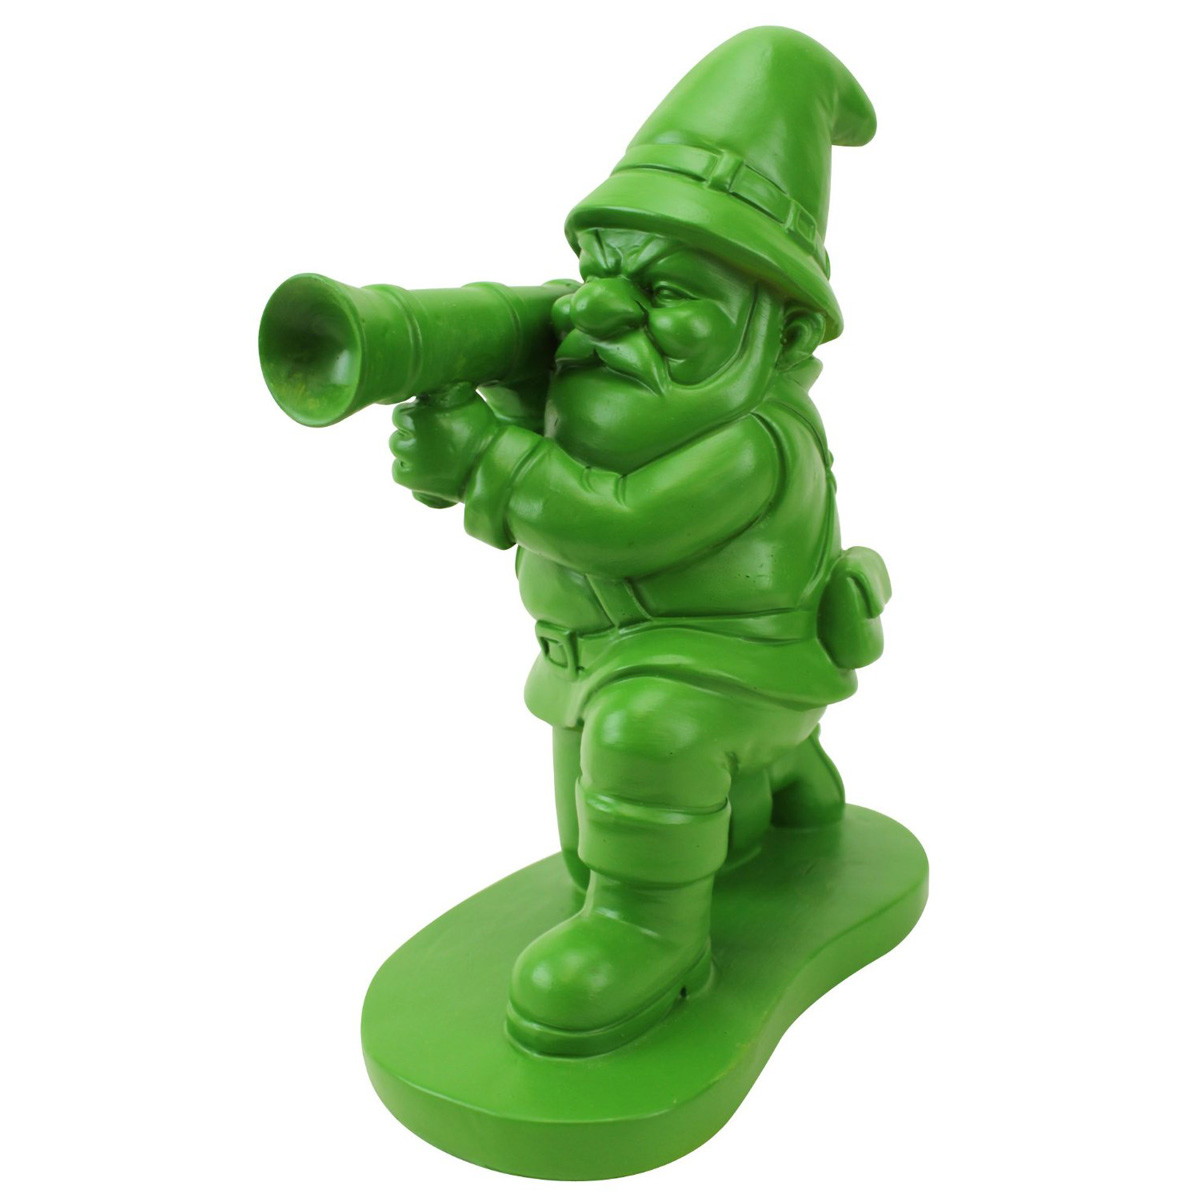 Green Army Man Garden Gnome The Head